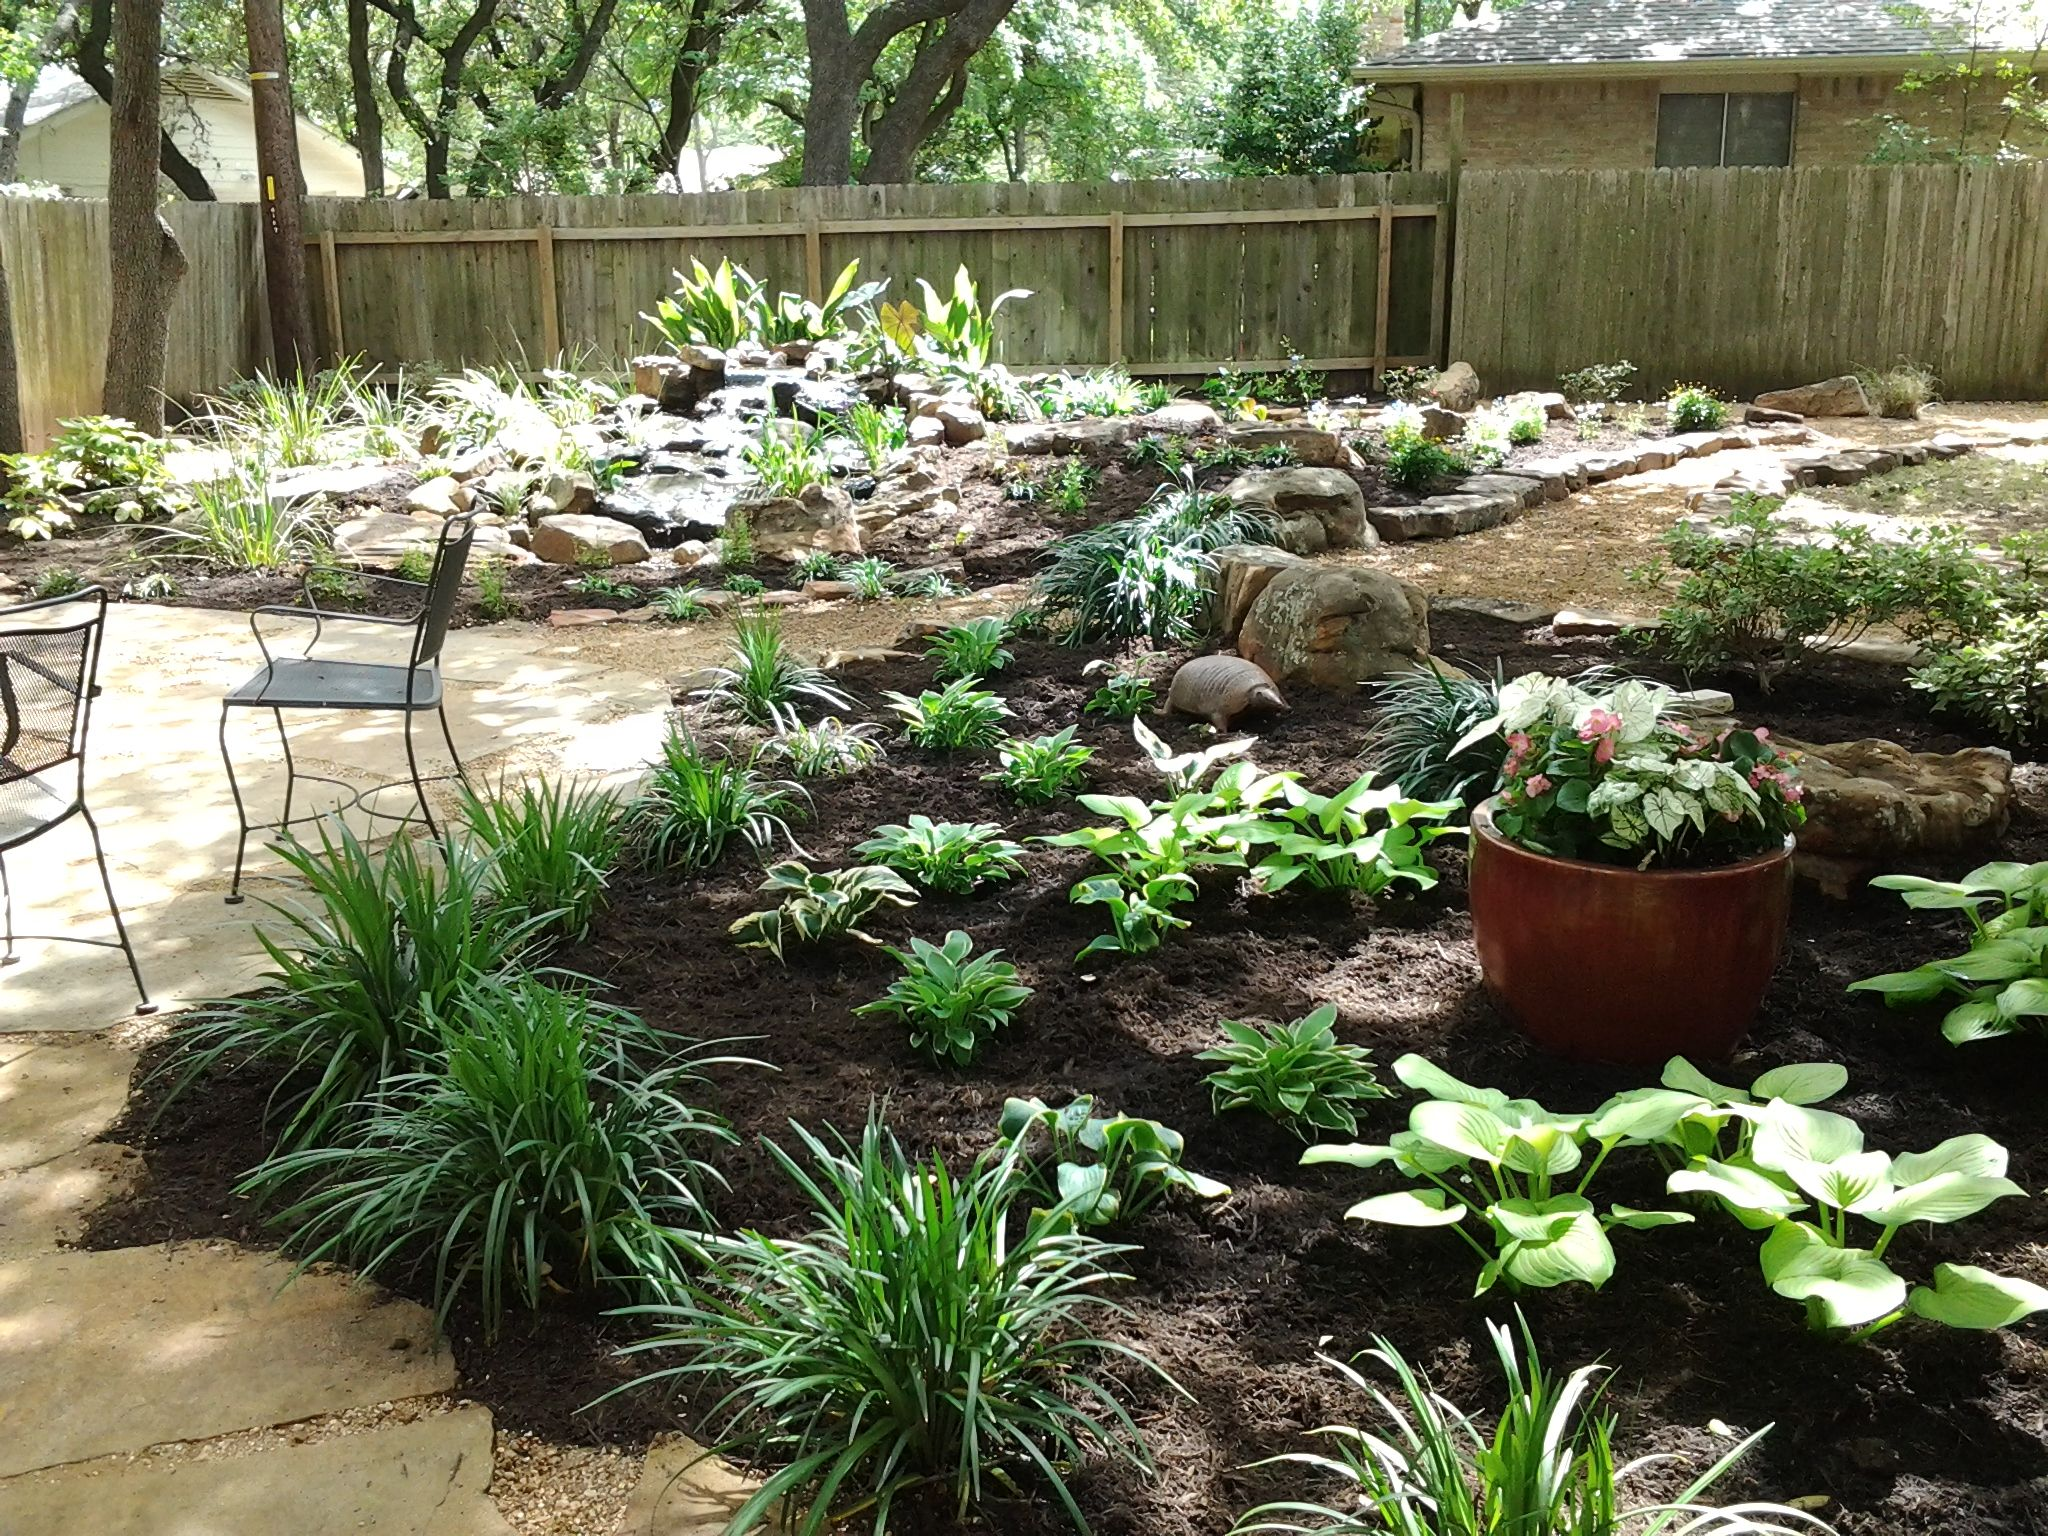 shade garden with a water feature. yes those are hostas in austin